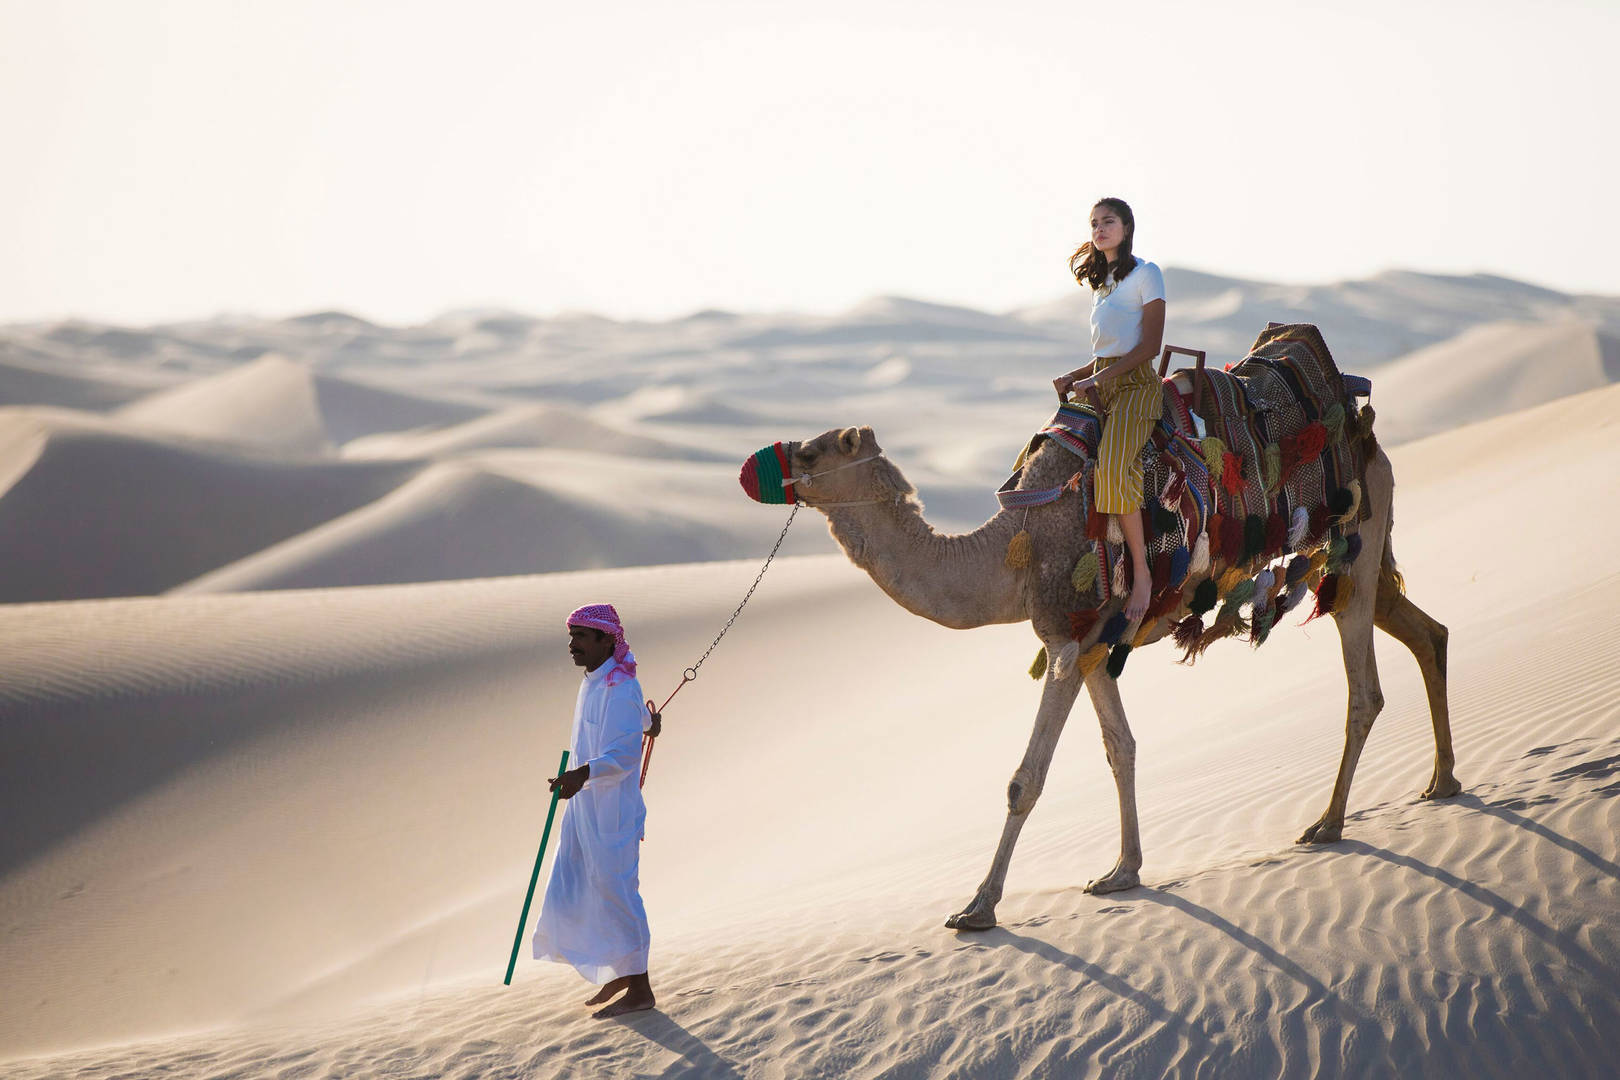 Lady riding a camel in the desert